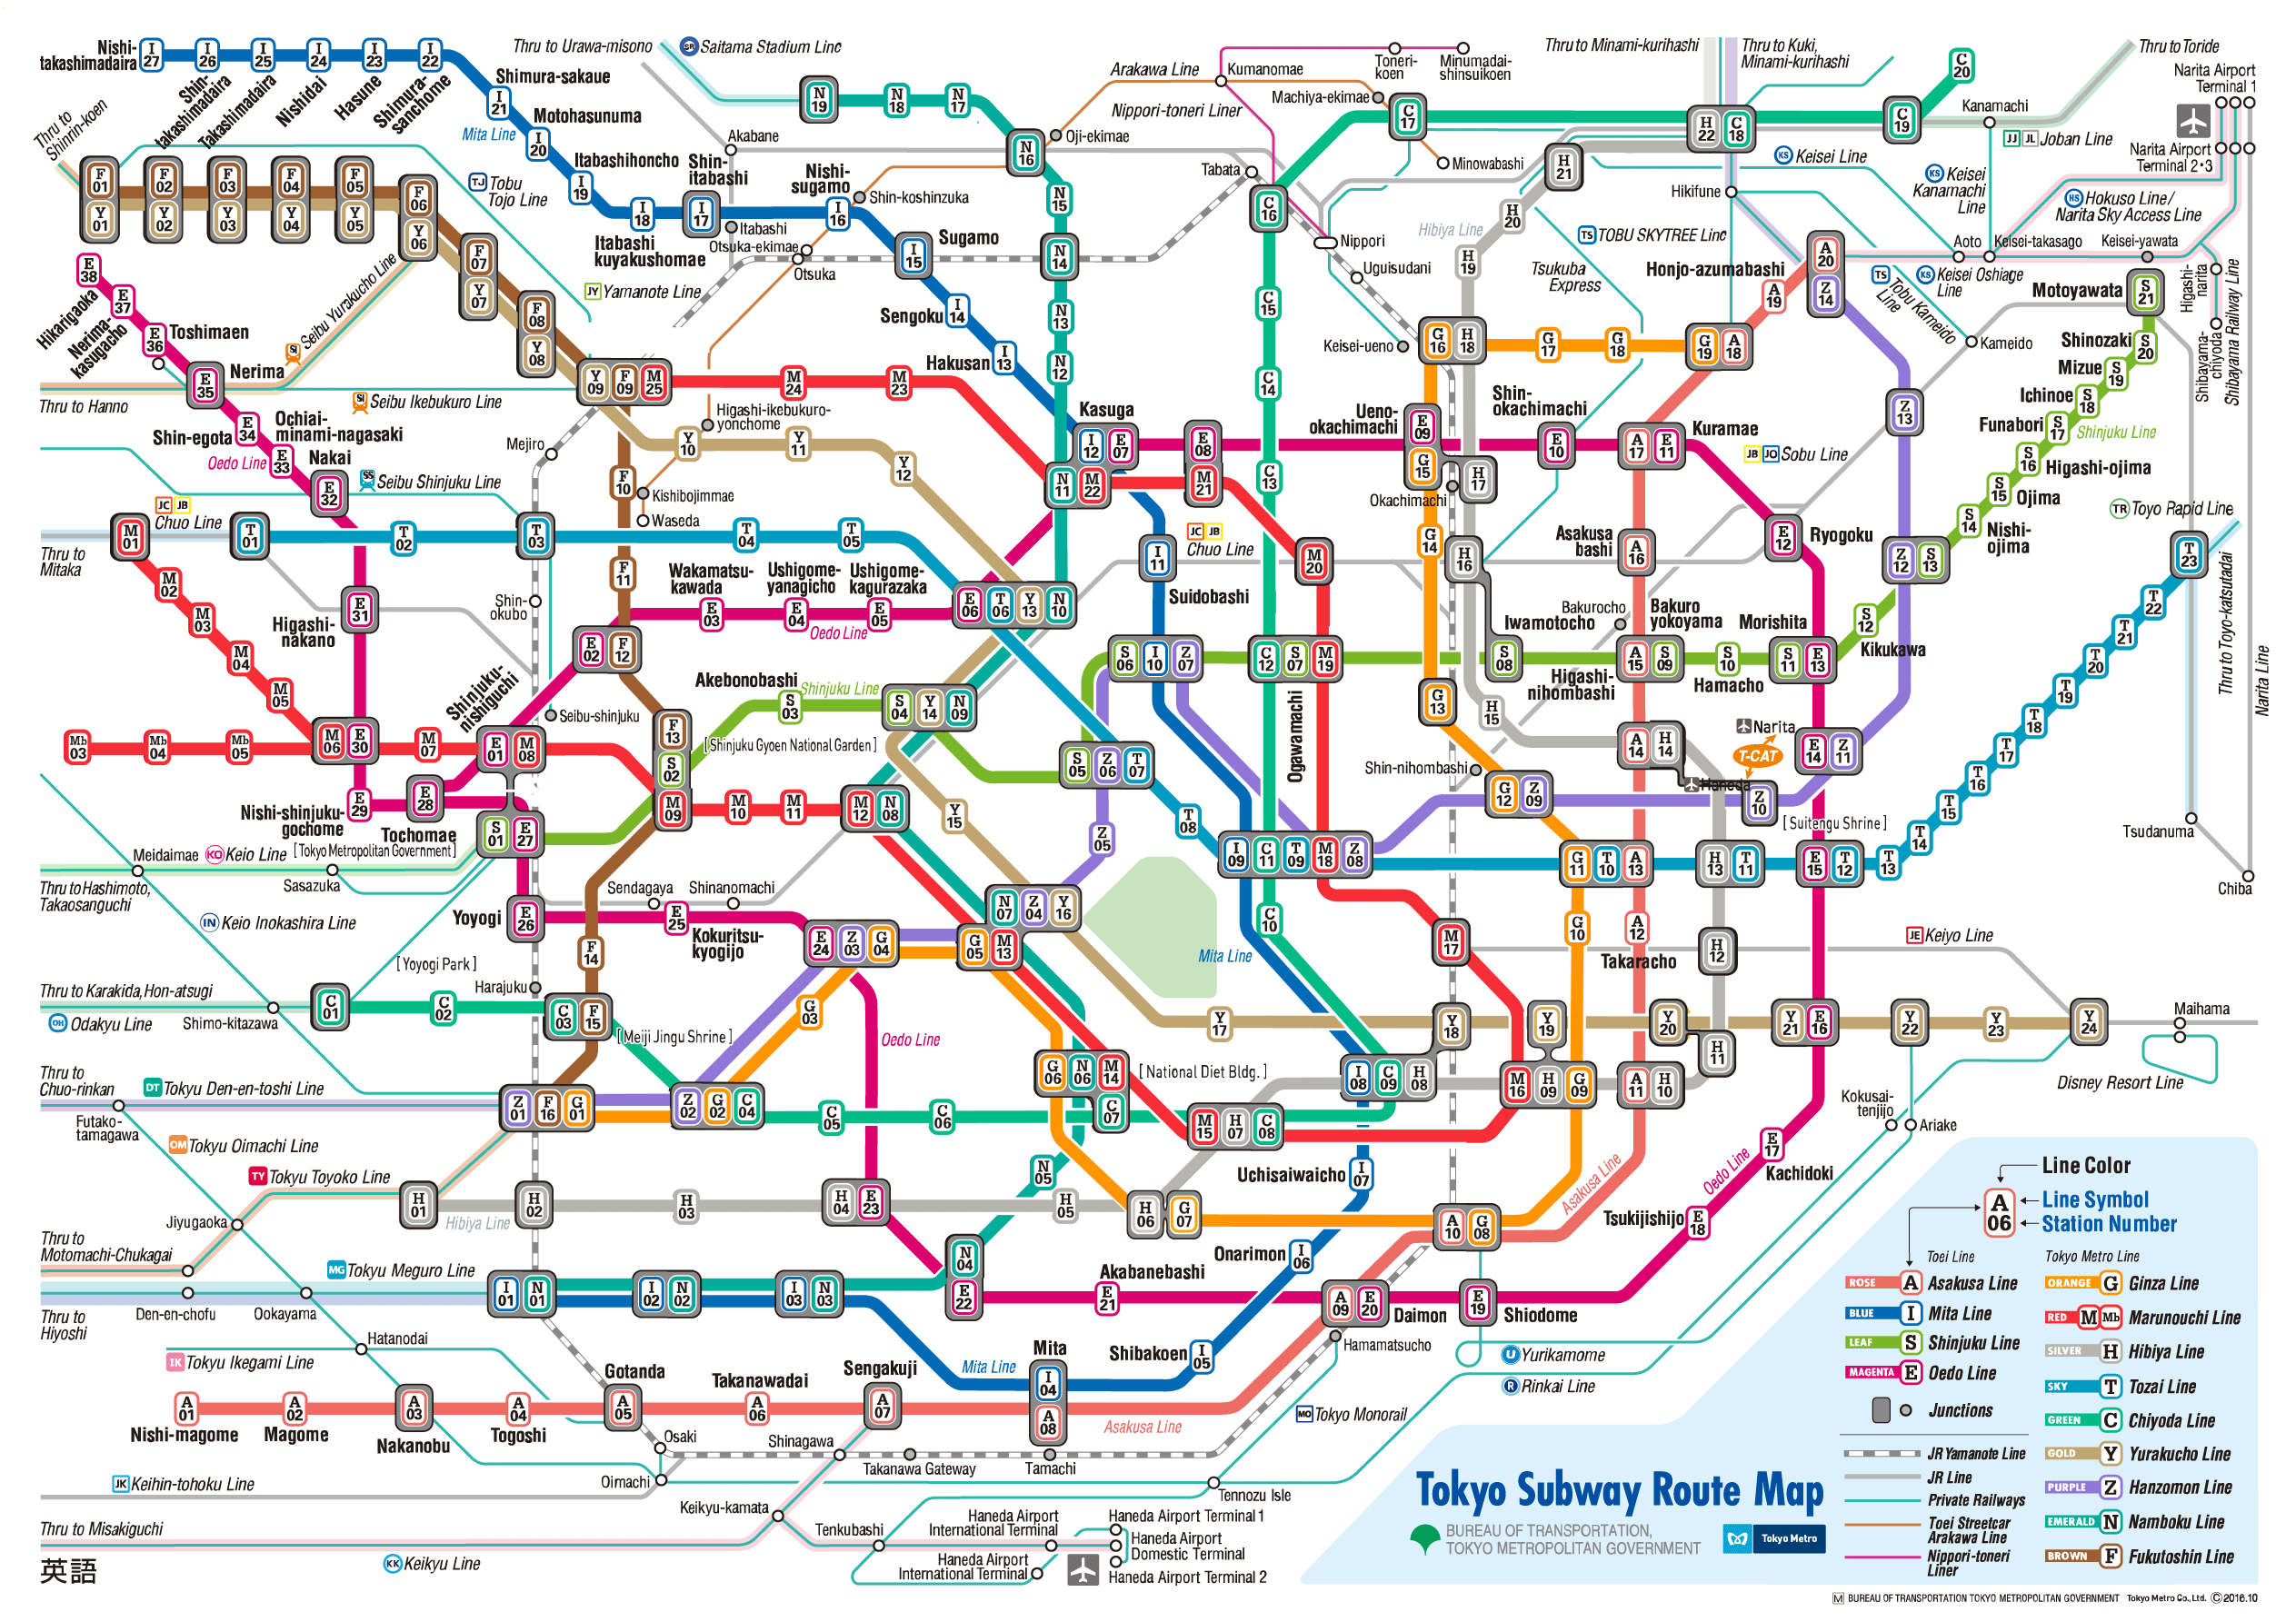 http://www.tokyometro.jp/library/svg_map/img/en/all.png